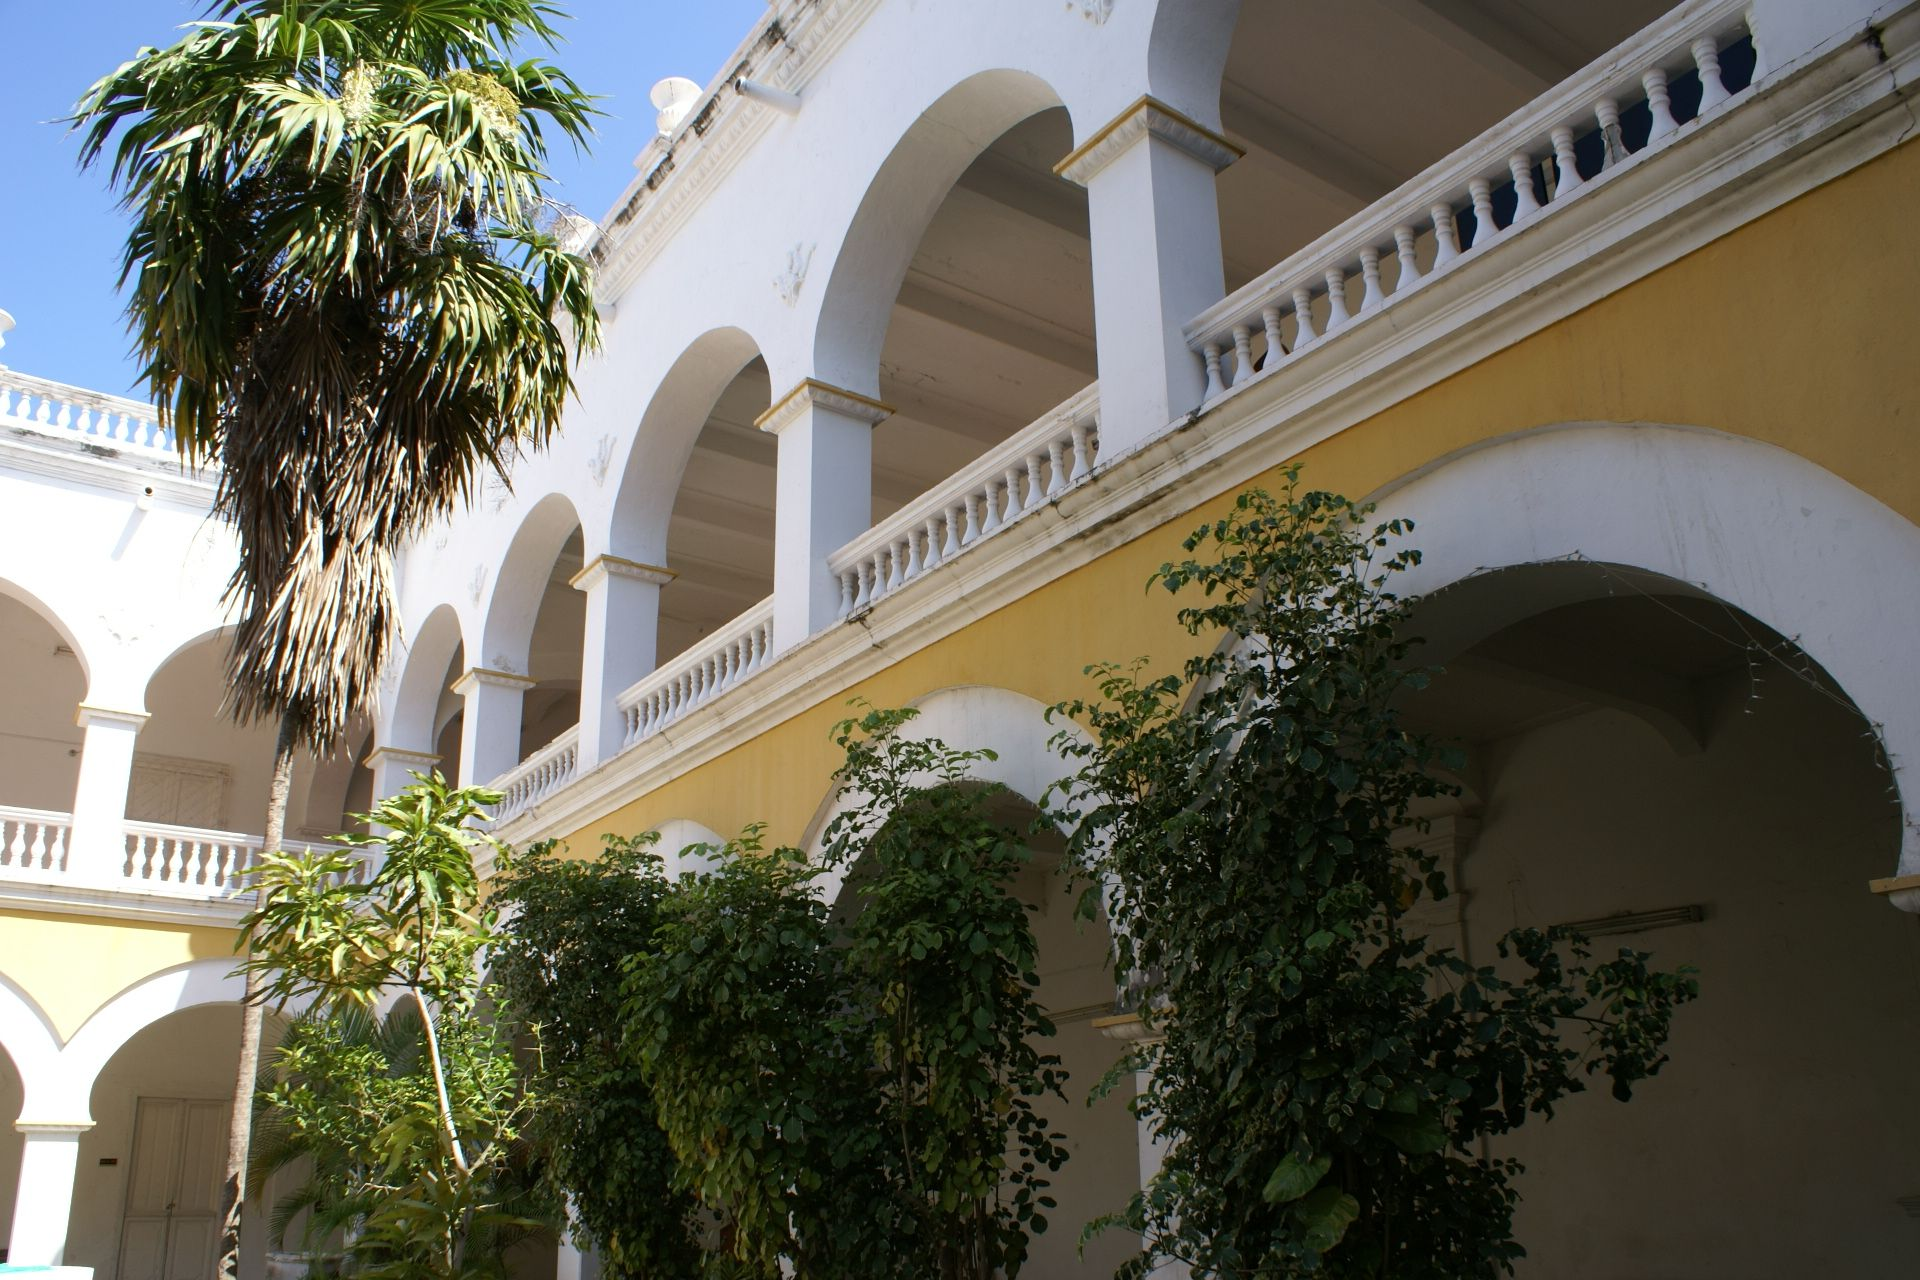 Universidad de Cartagena, Claustro de de la Merced